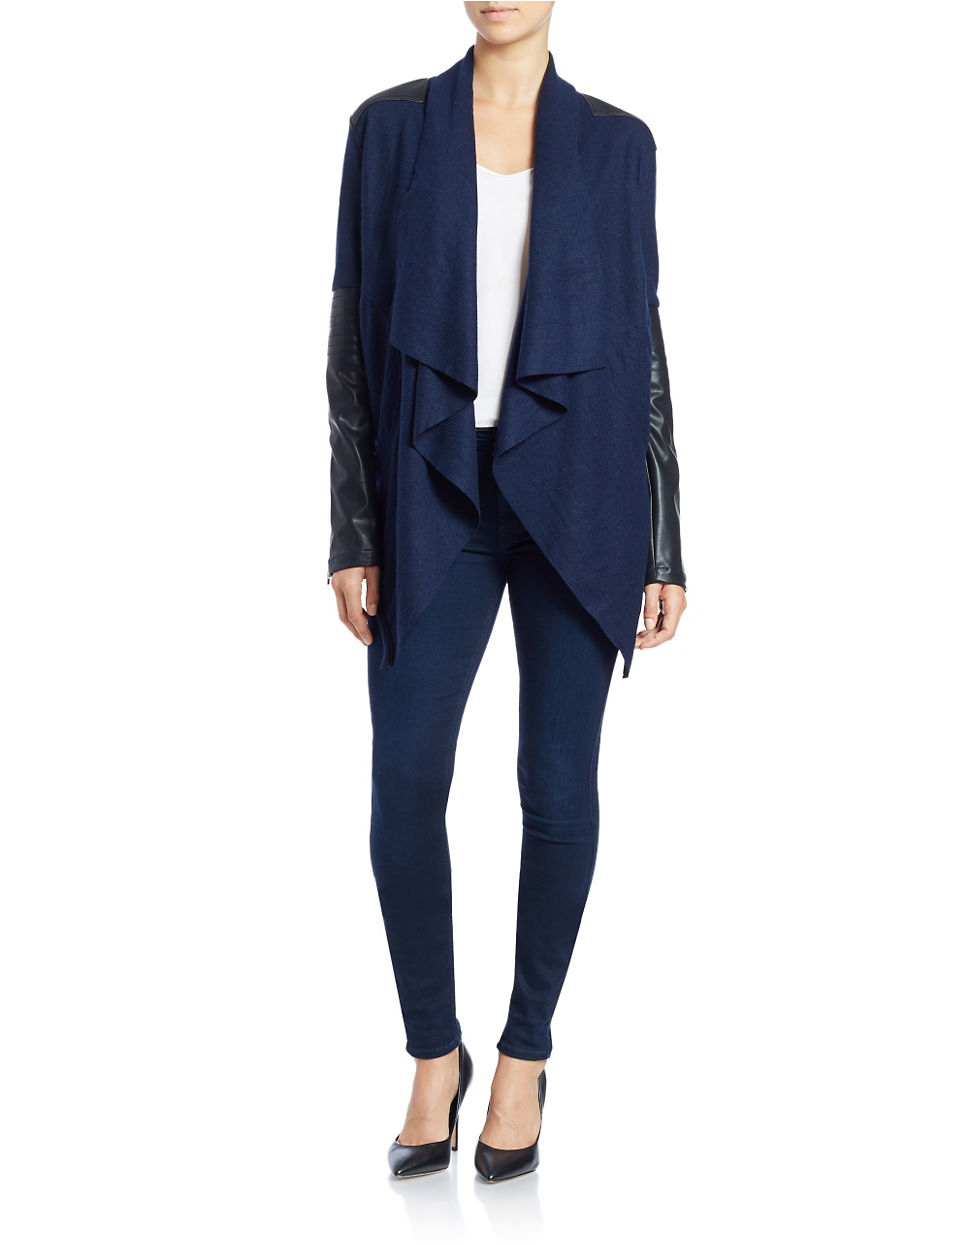 Blank Waterfall Cardigan in Blue | Lyst